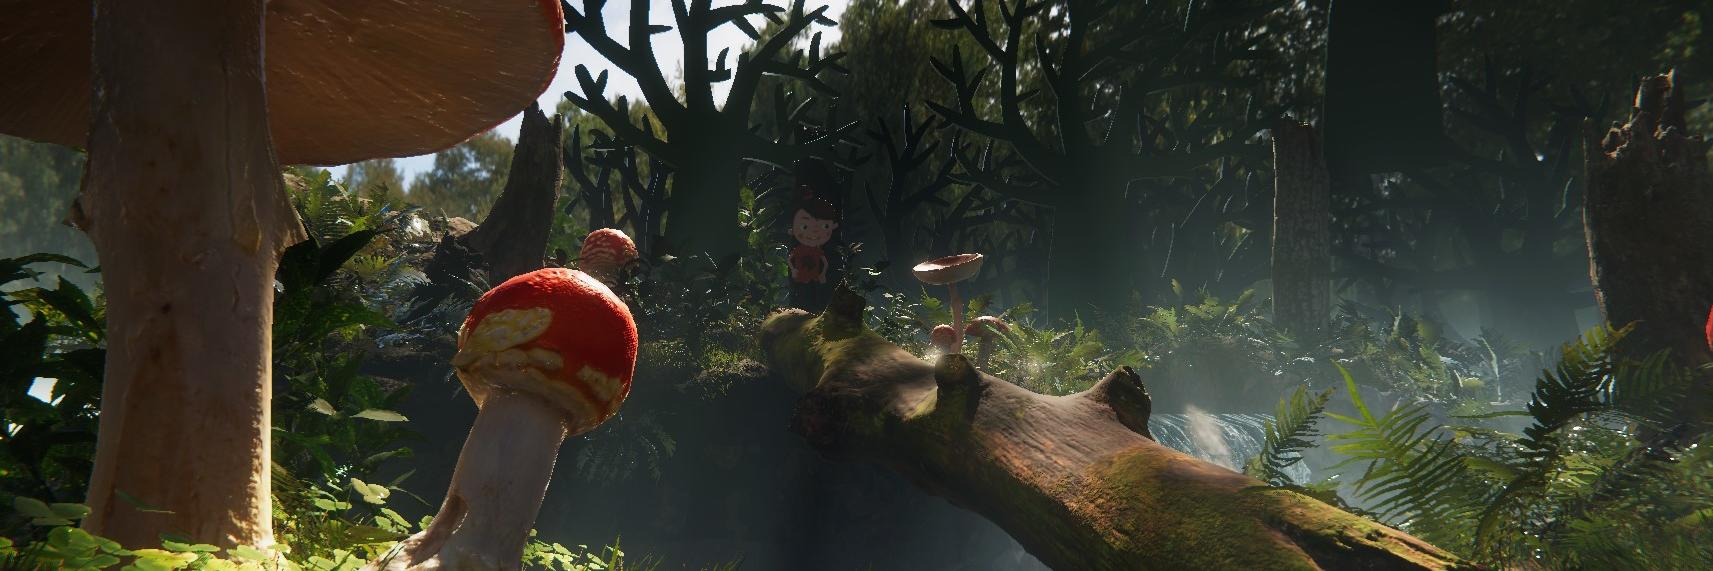 A forest full of mushrooms